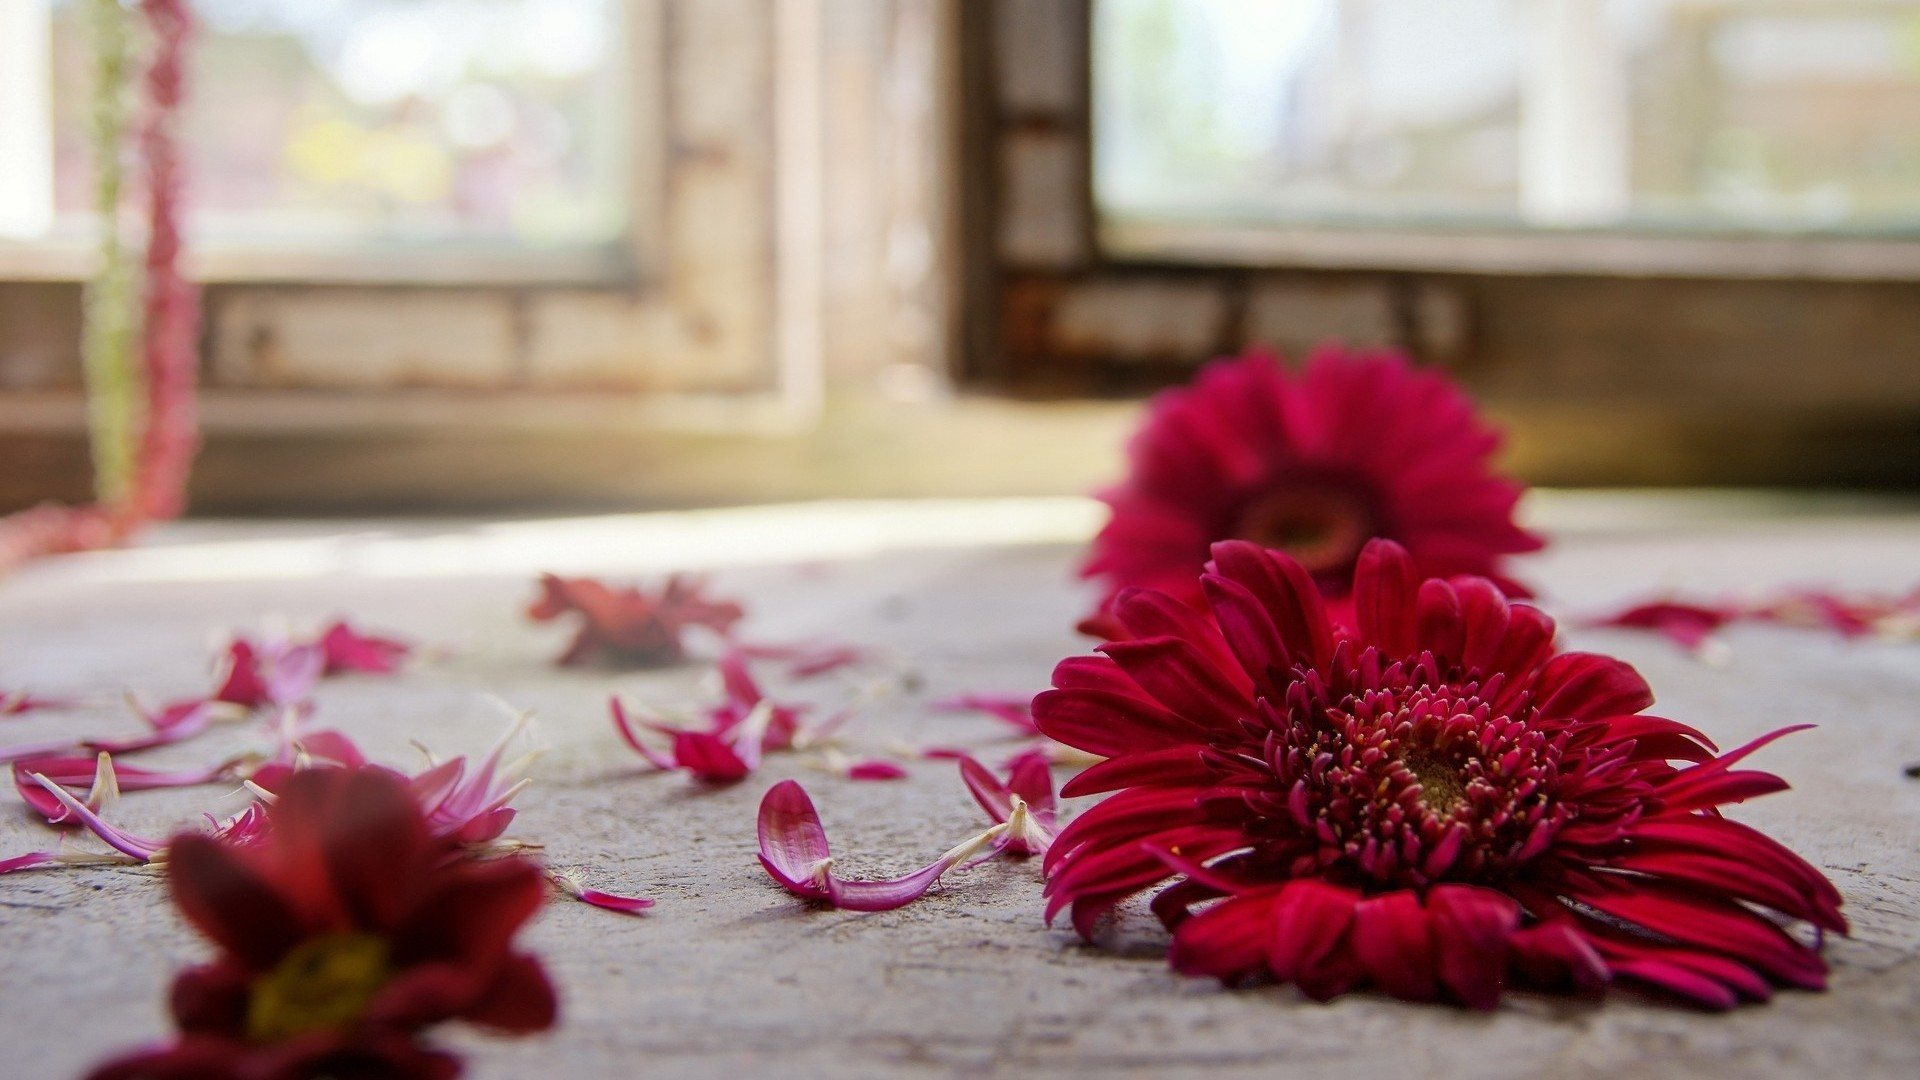 gerbera flowers wallpapers